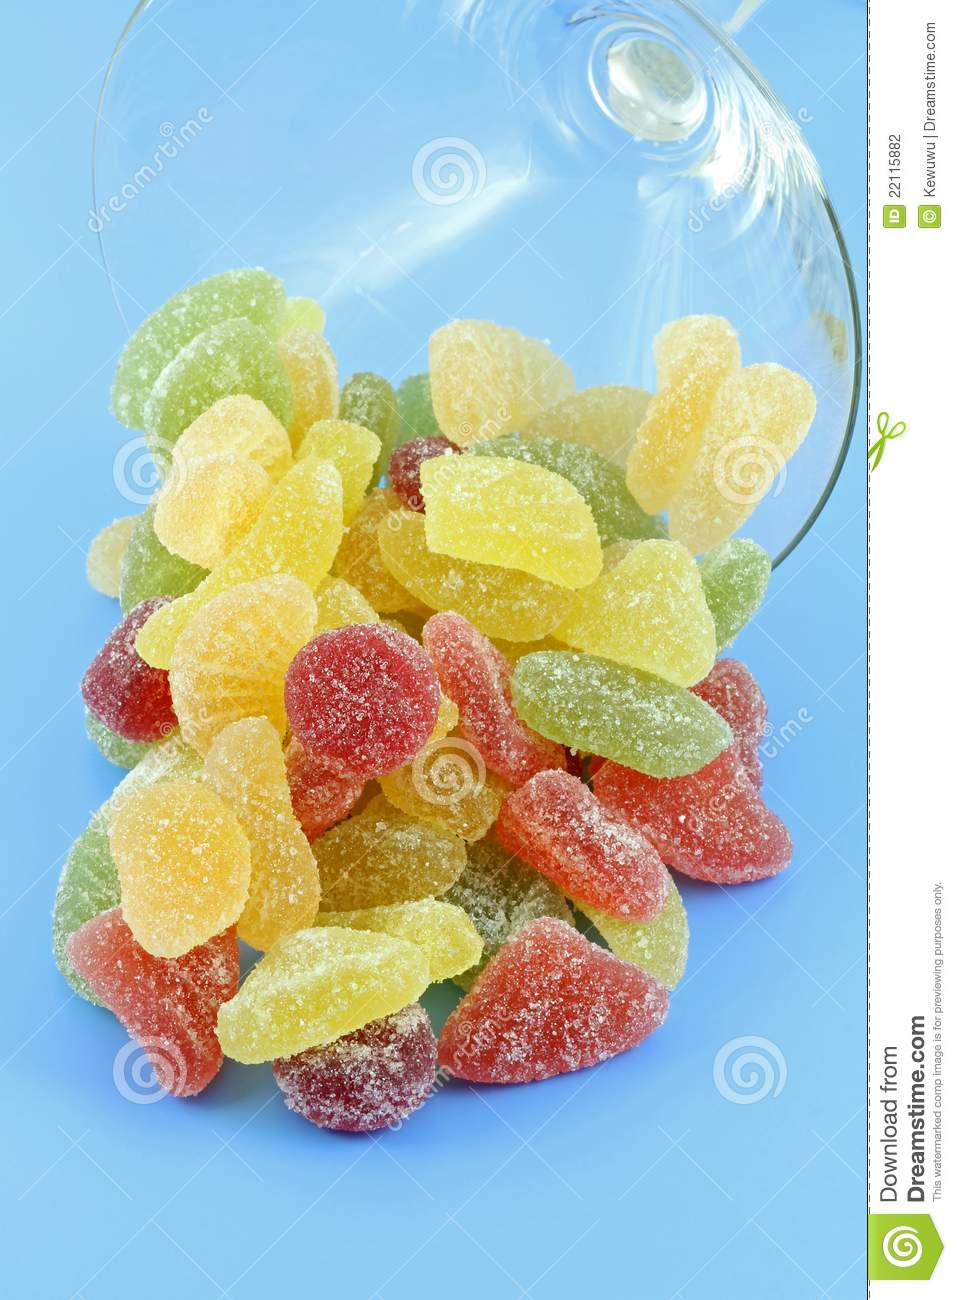 Sweet And Sour Candy Quotes Quotesgram